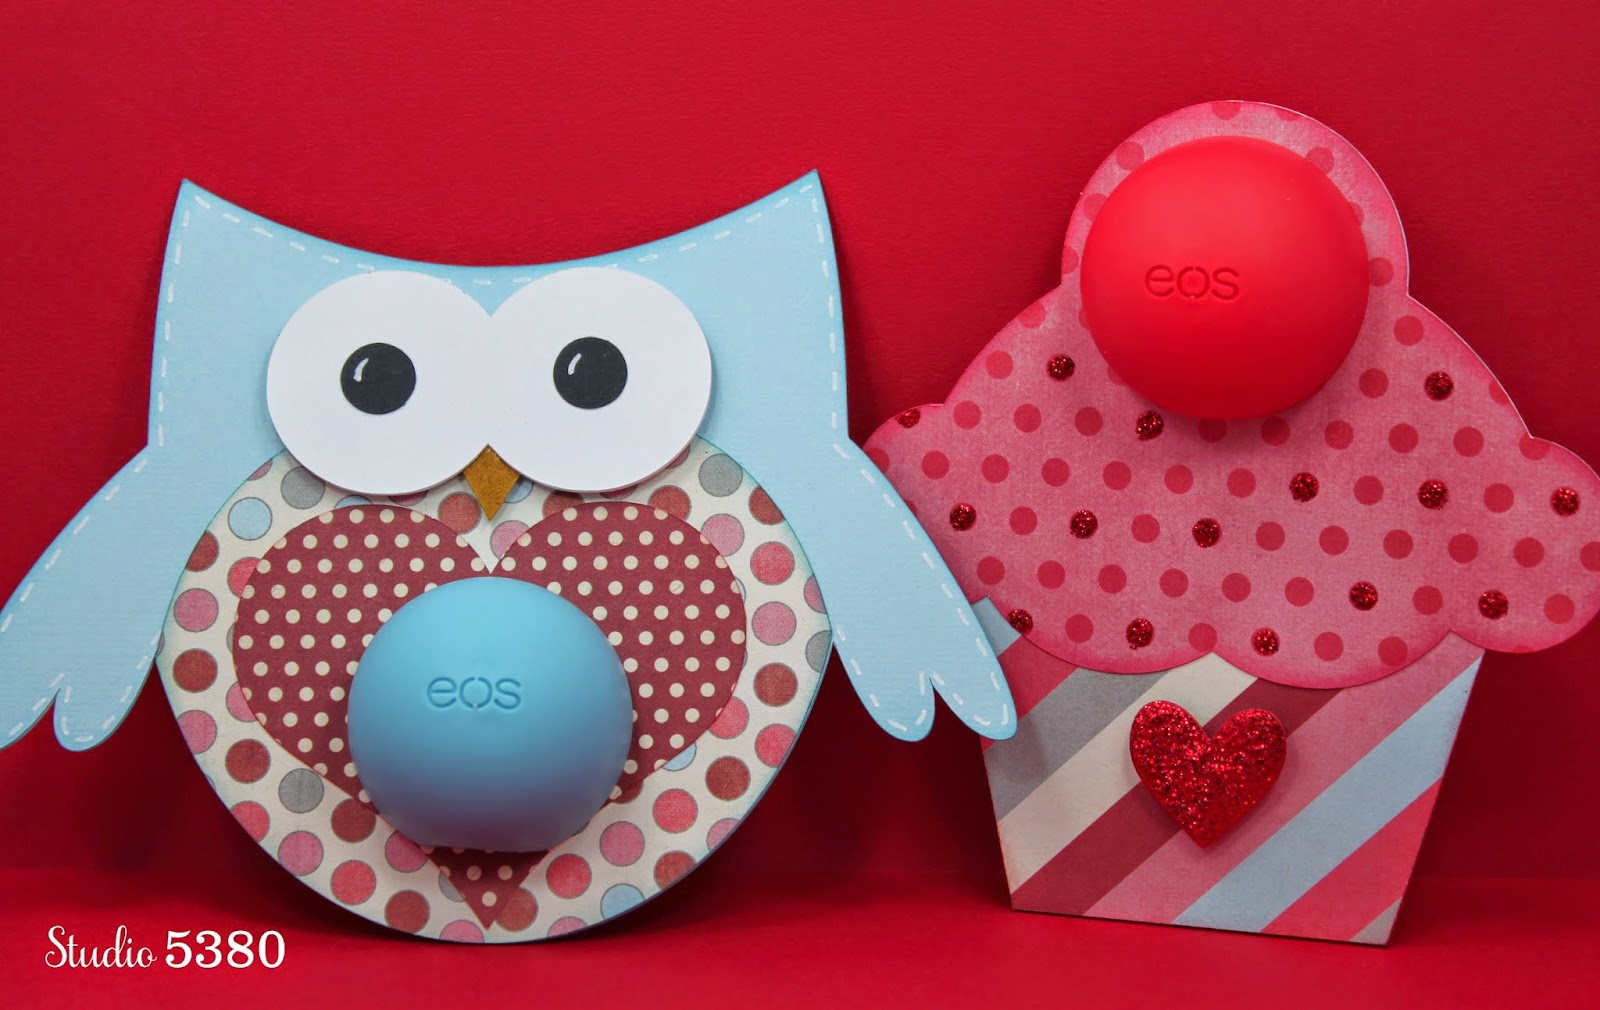 Studio 5380 Eos Valentine Treats